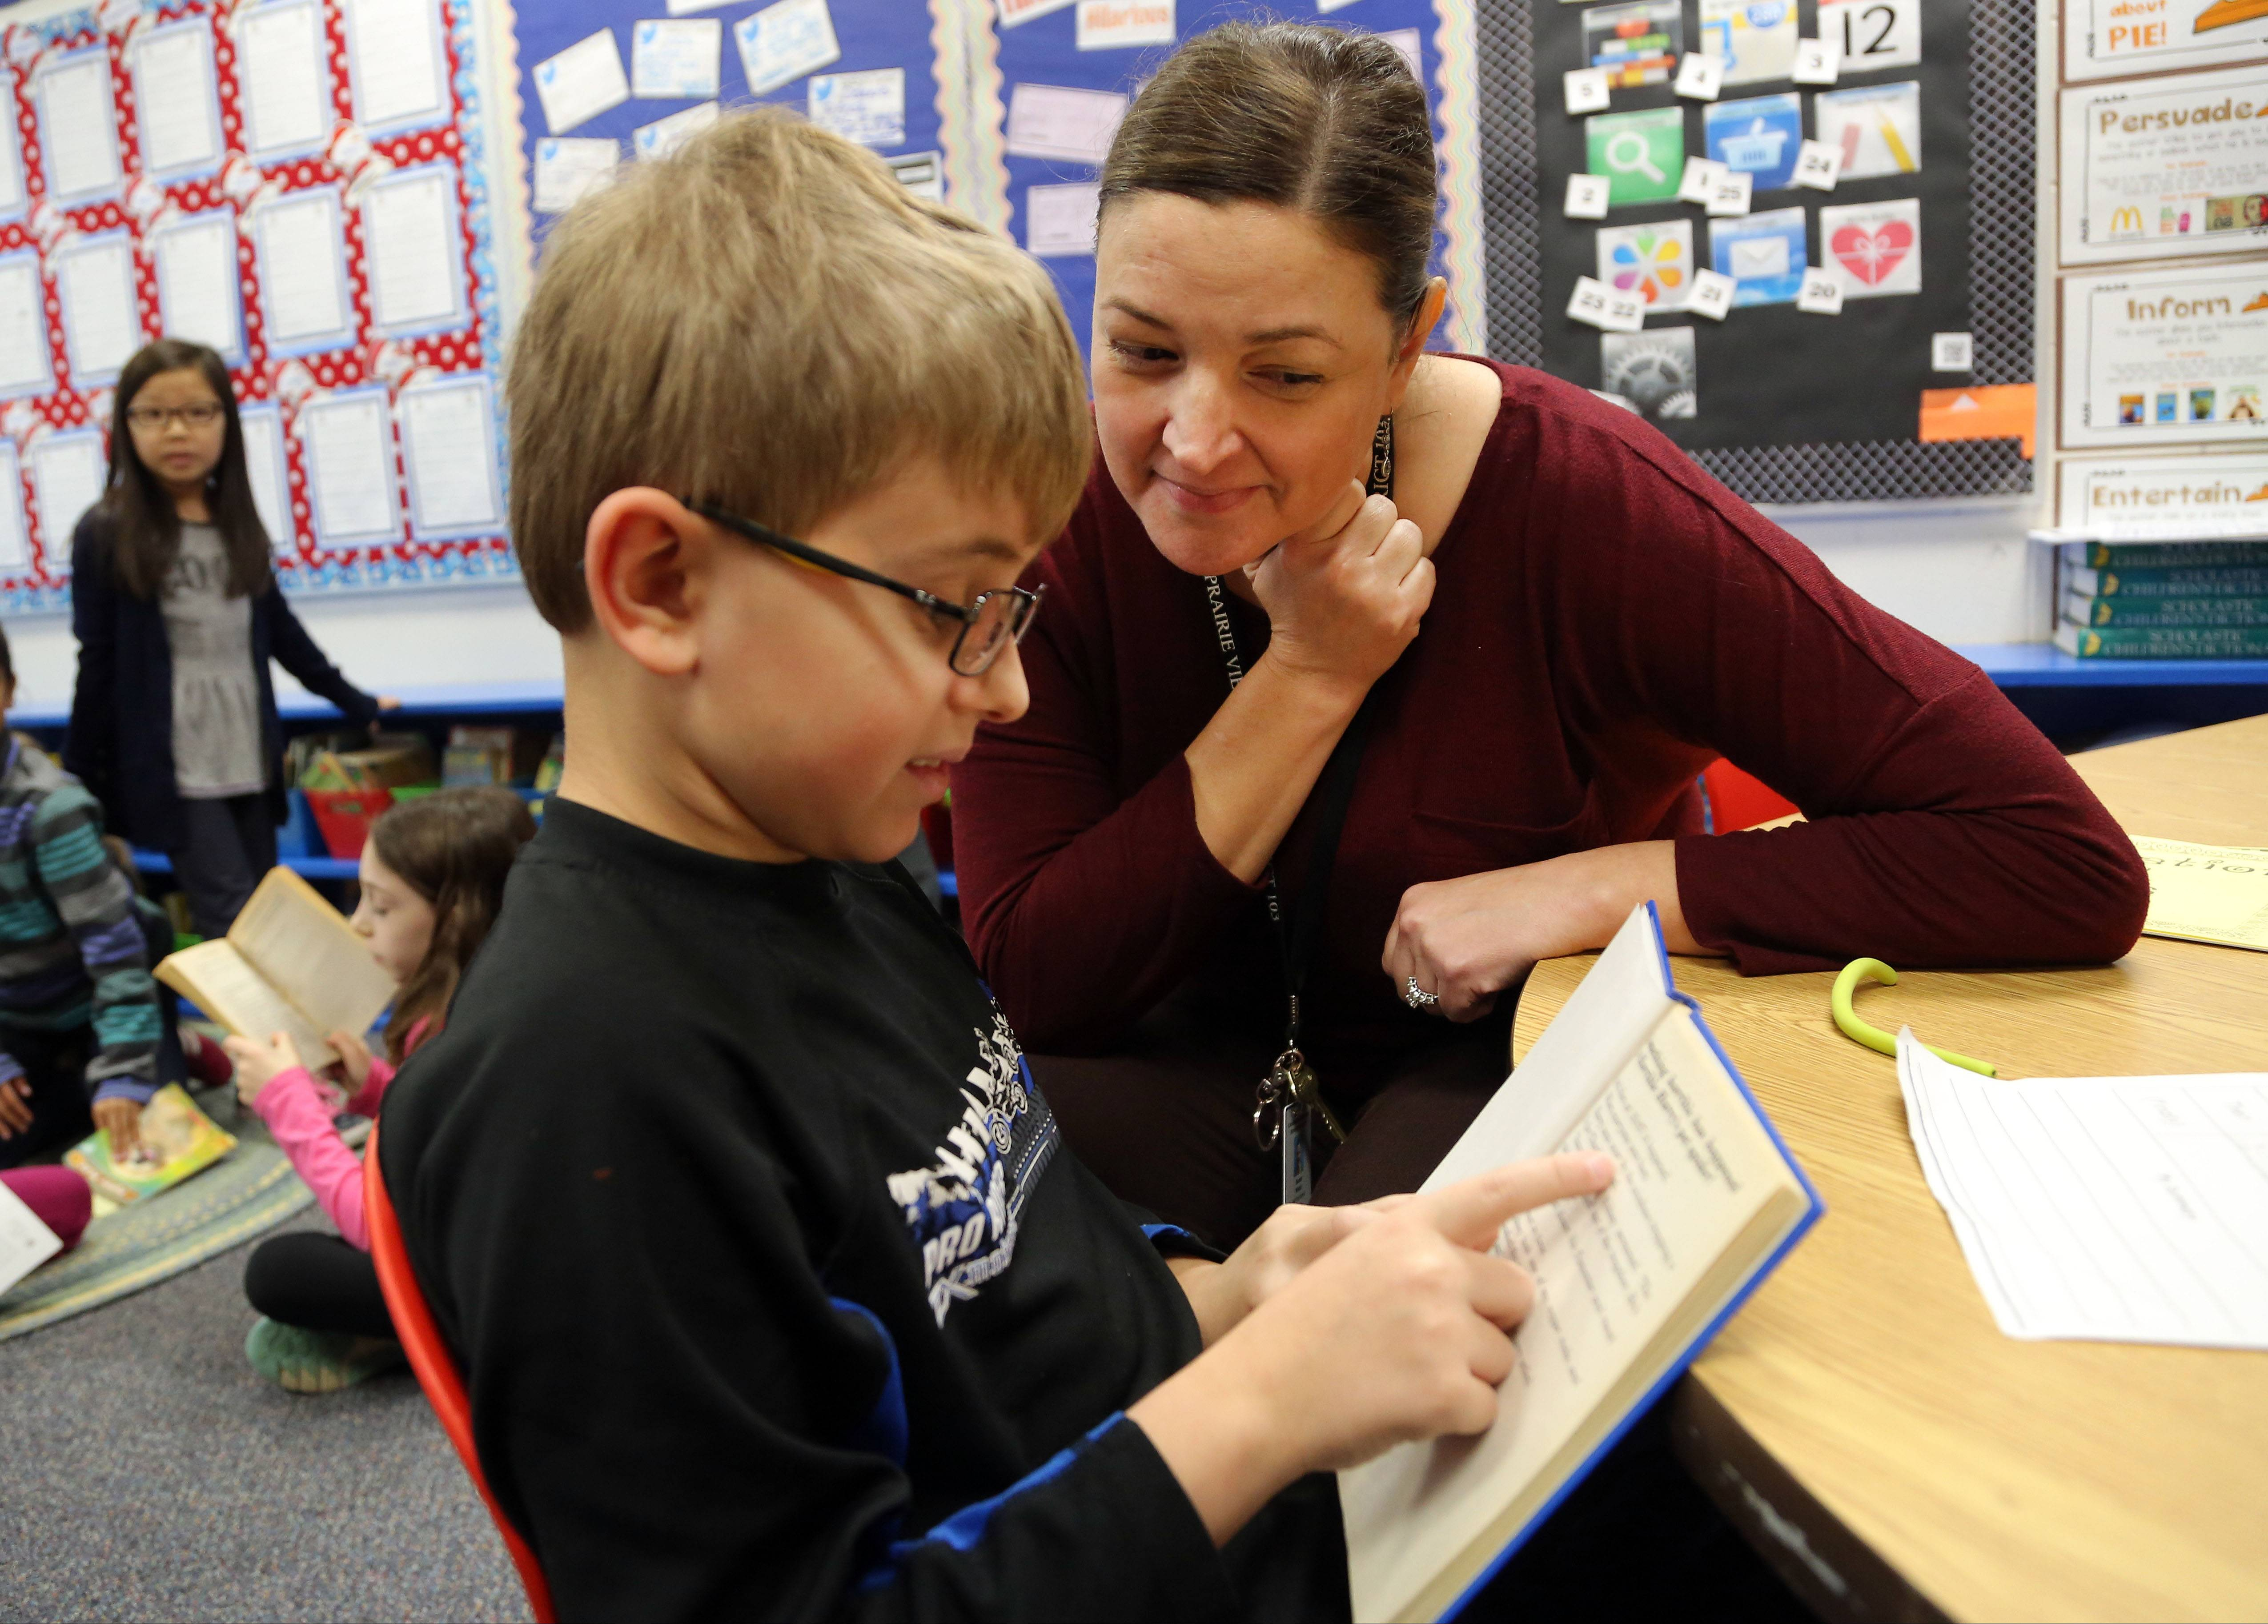 Third-grade teacher Susan Walsh, right, works with Nick Zizzo at Half Day School in Lincolnshire. Half Day was among the top performing elementary and middle schools in Lake County on Illinois' new standardized test.